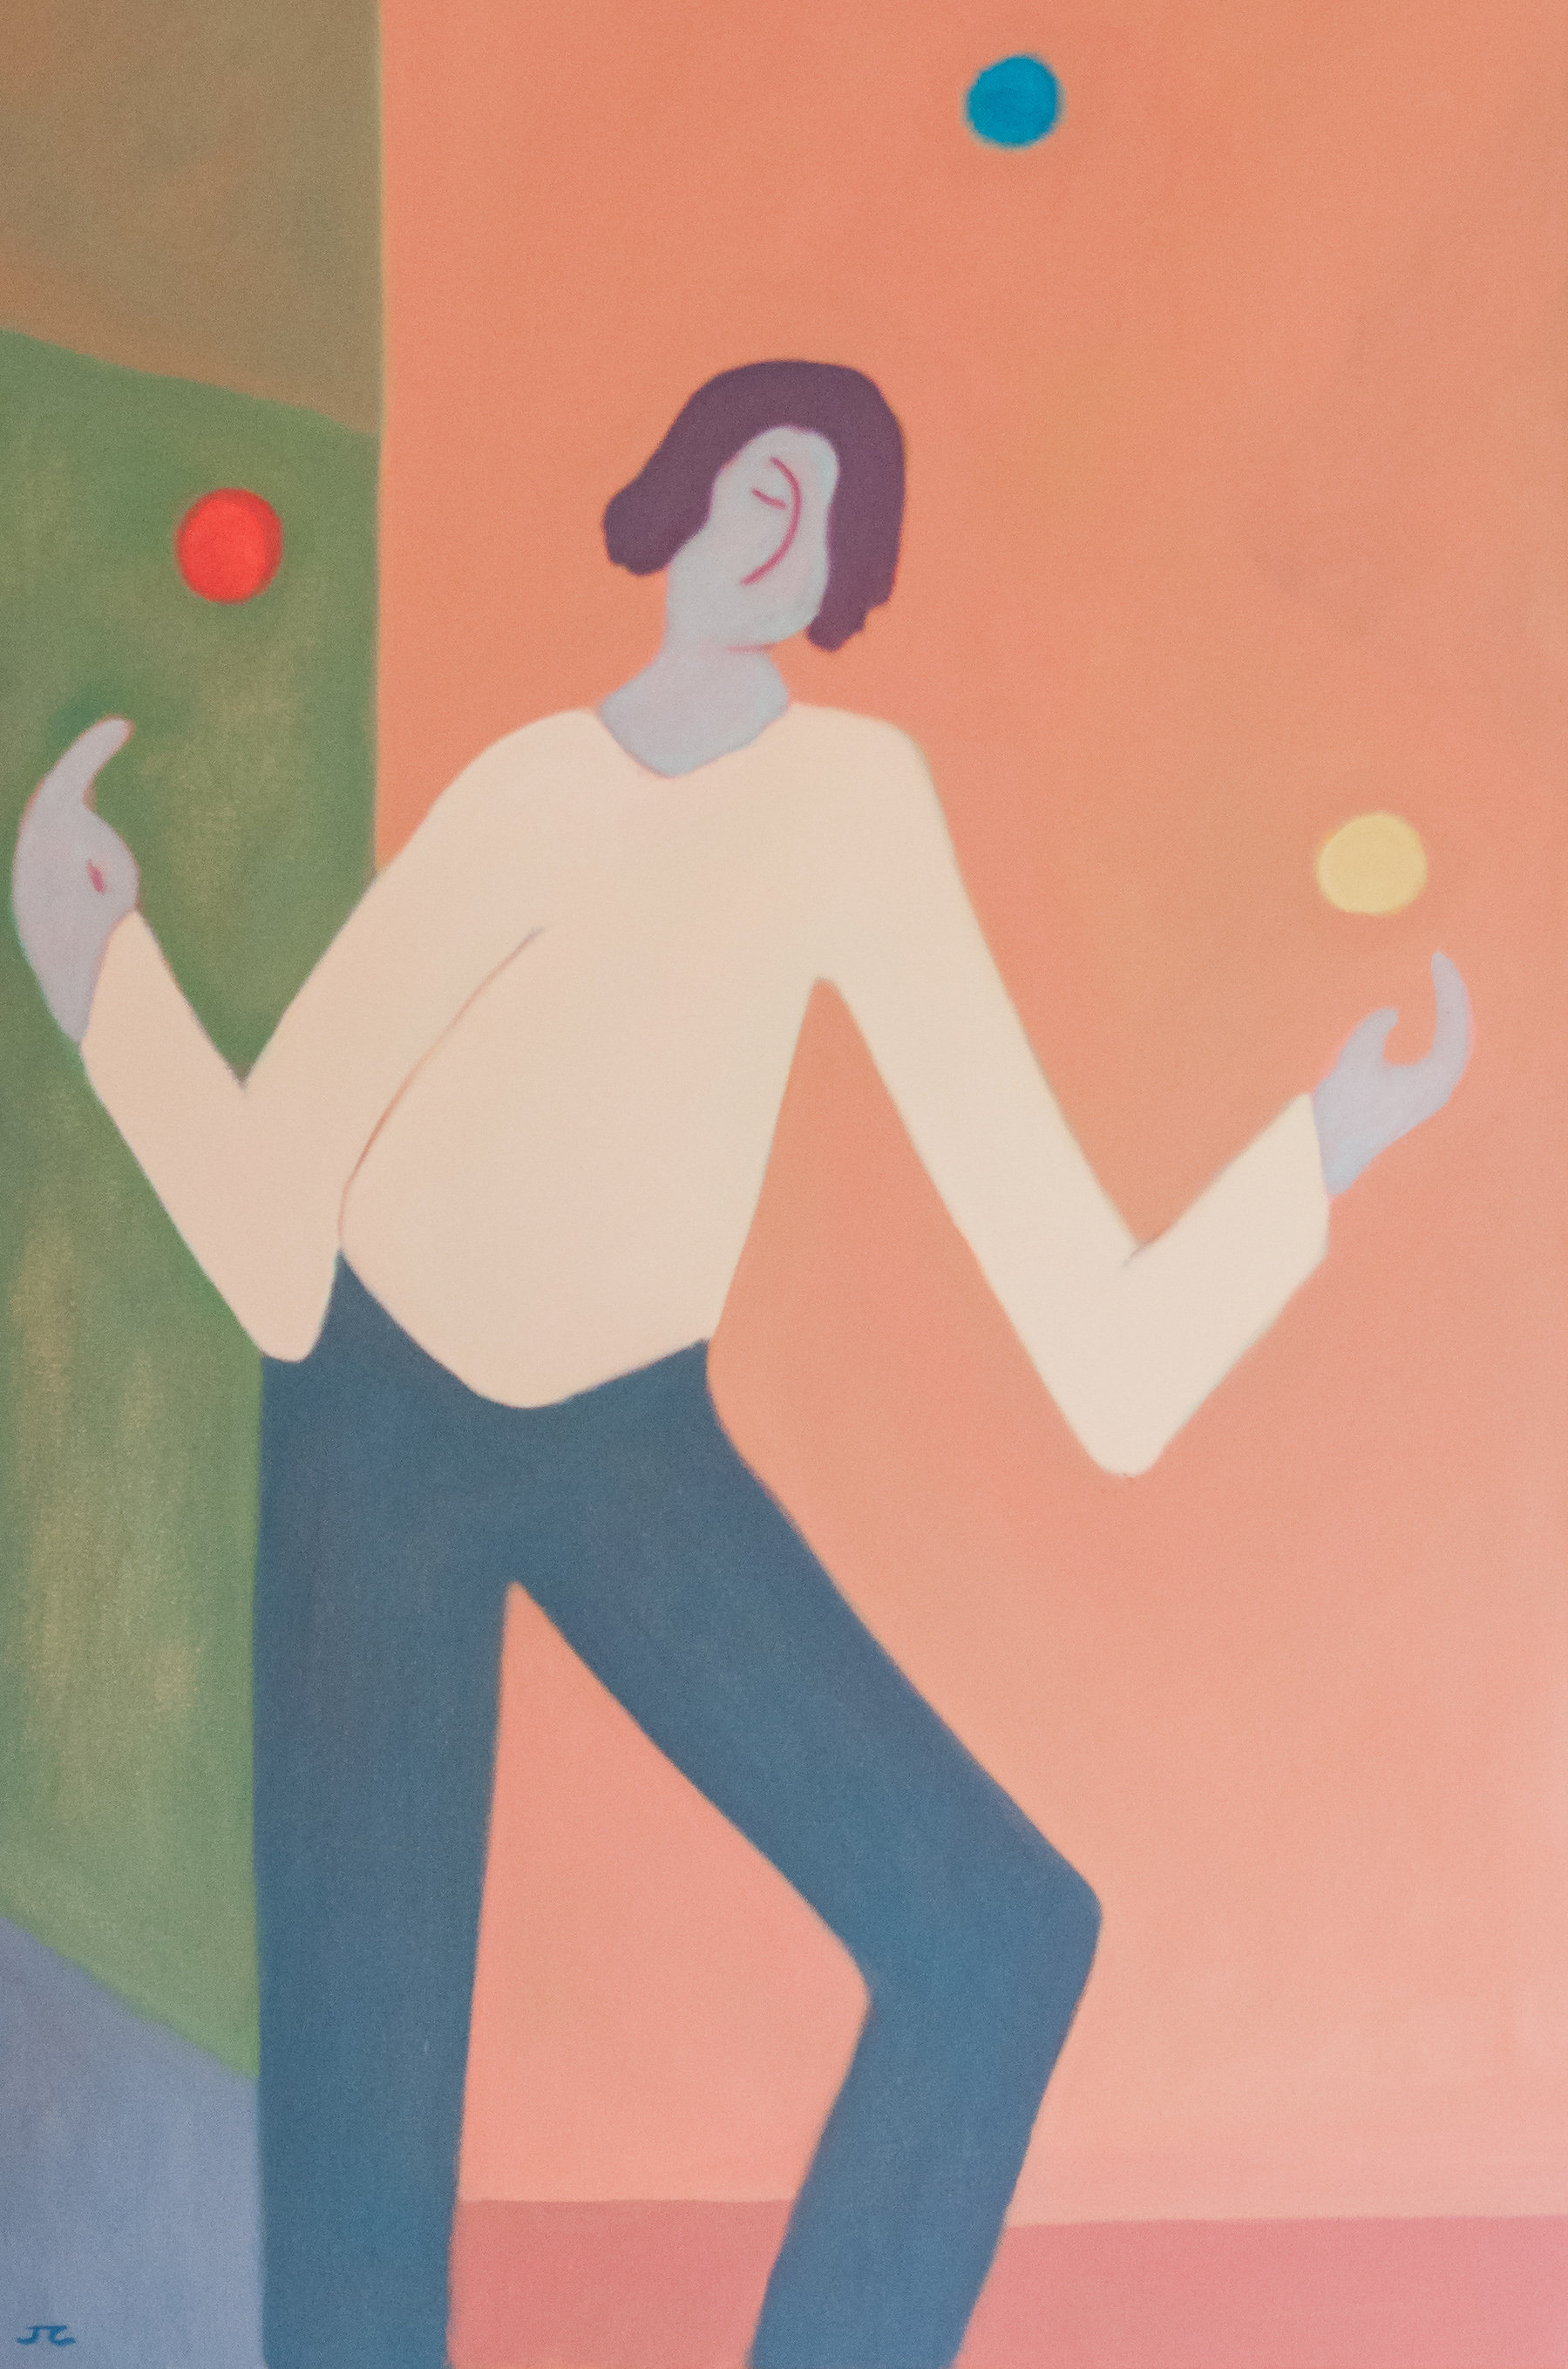 The Juggler Painting by Jerry Cantwell